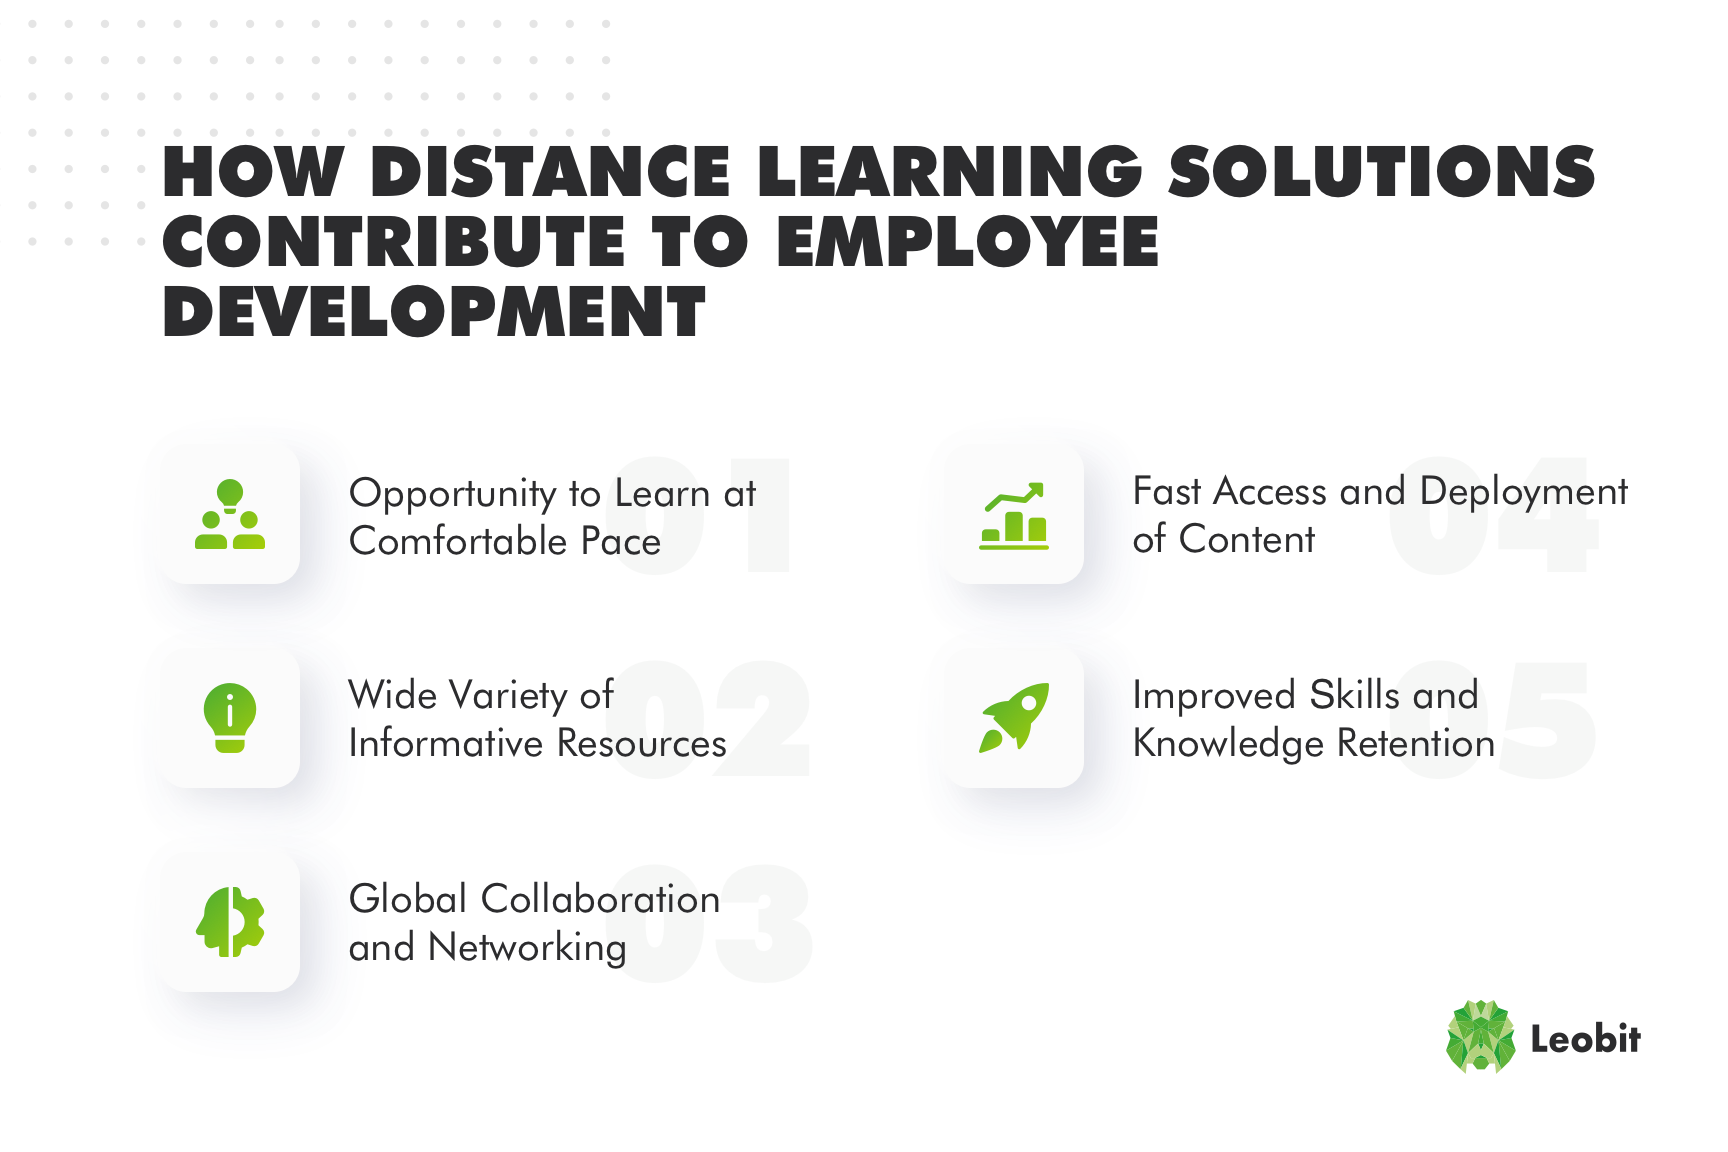 How Distance Learning Solutions Contribute to Employee Development